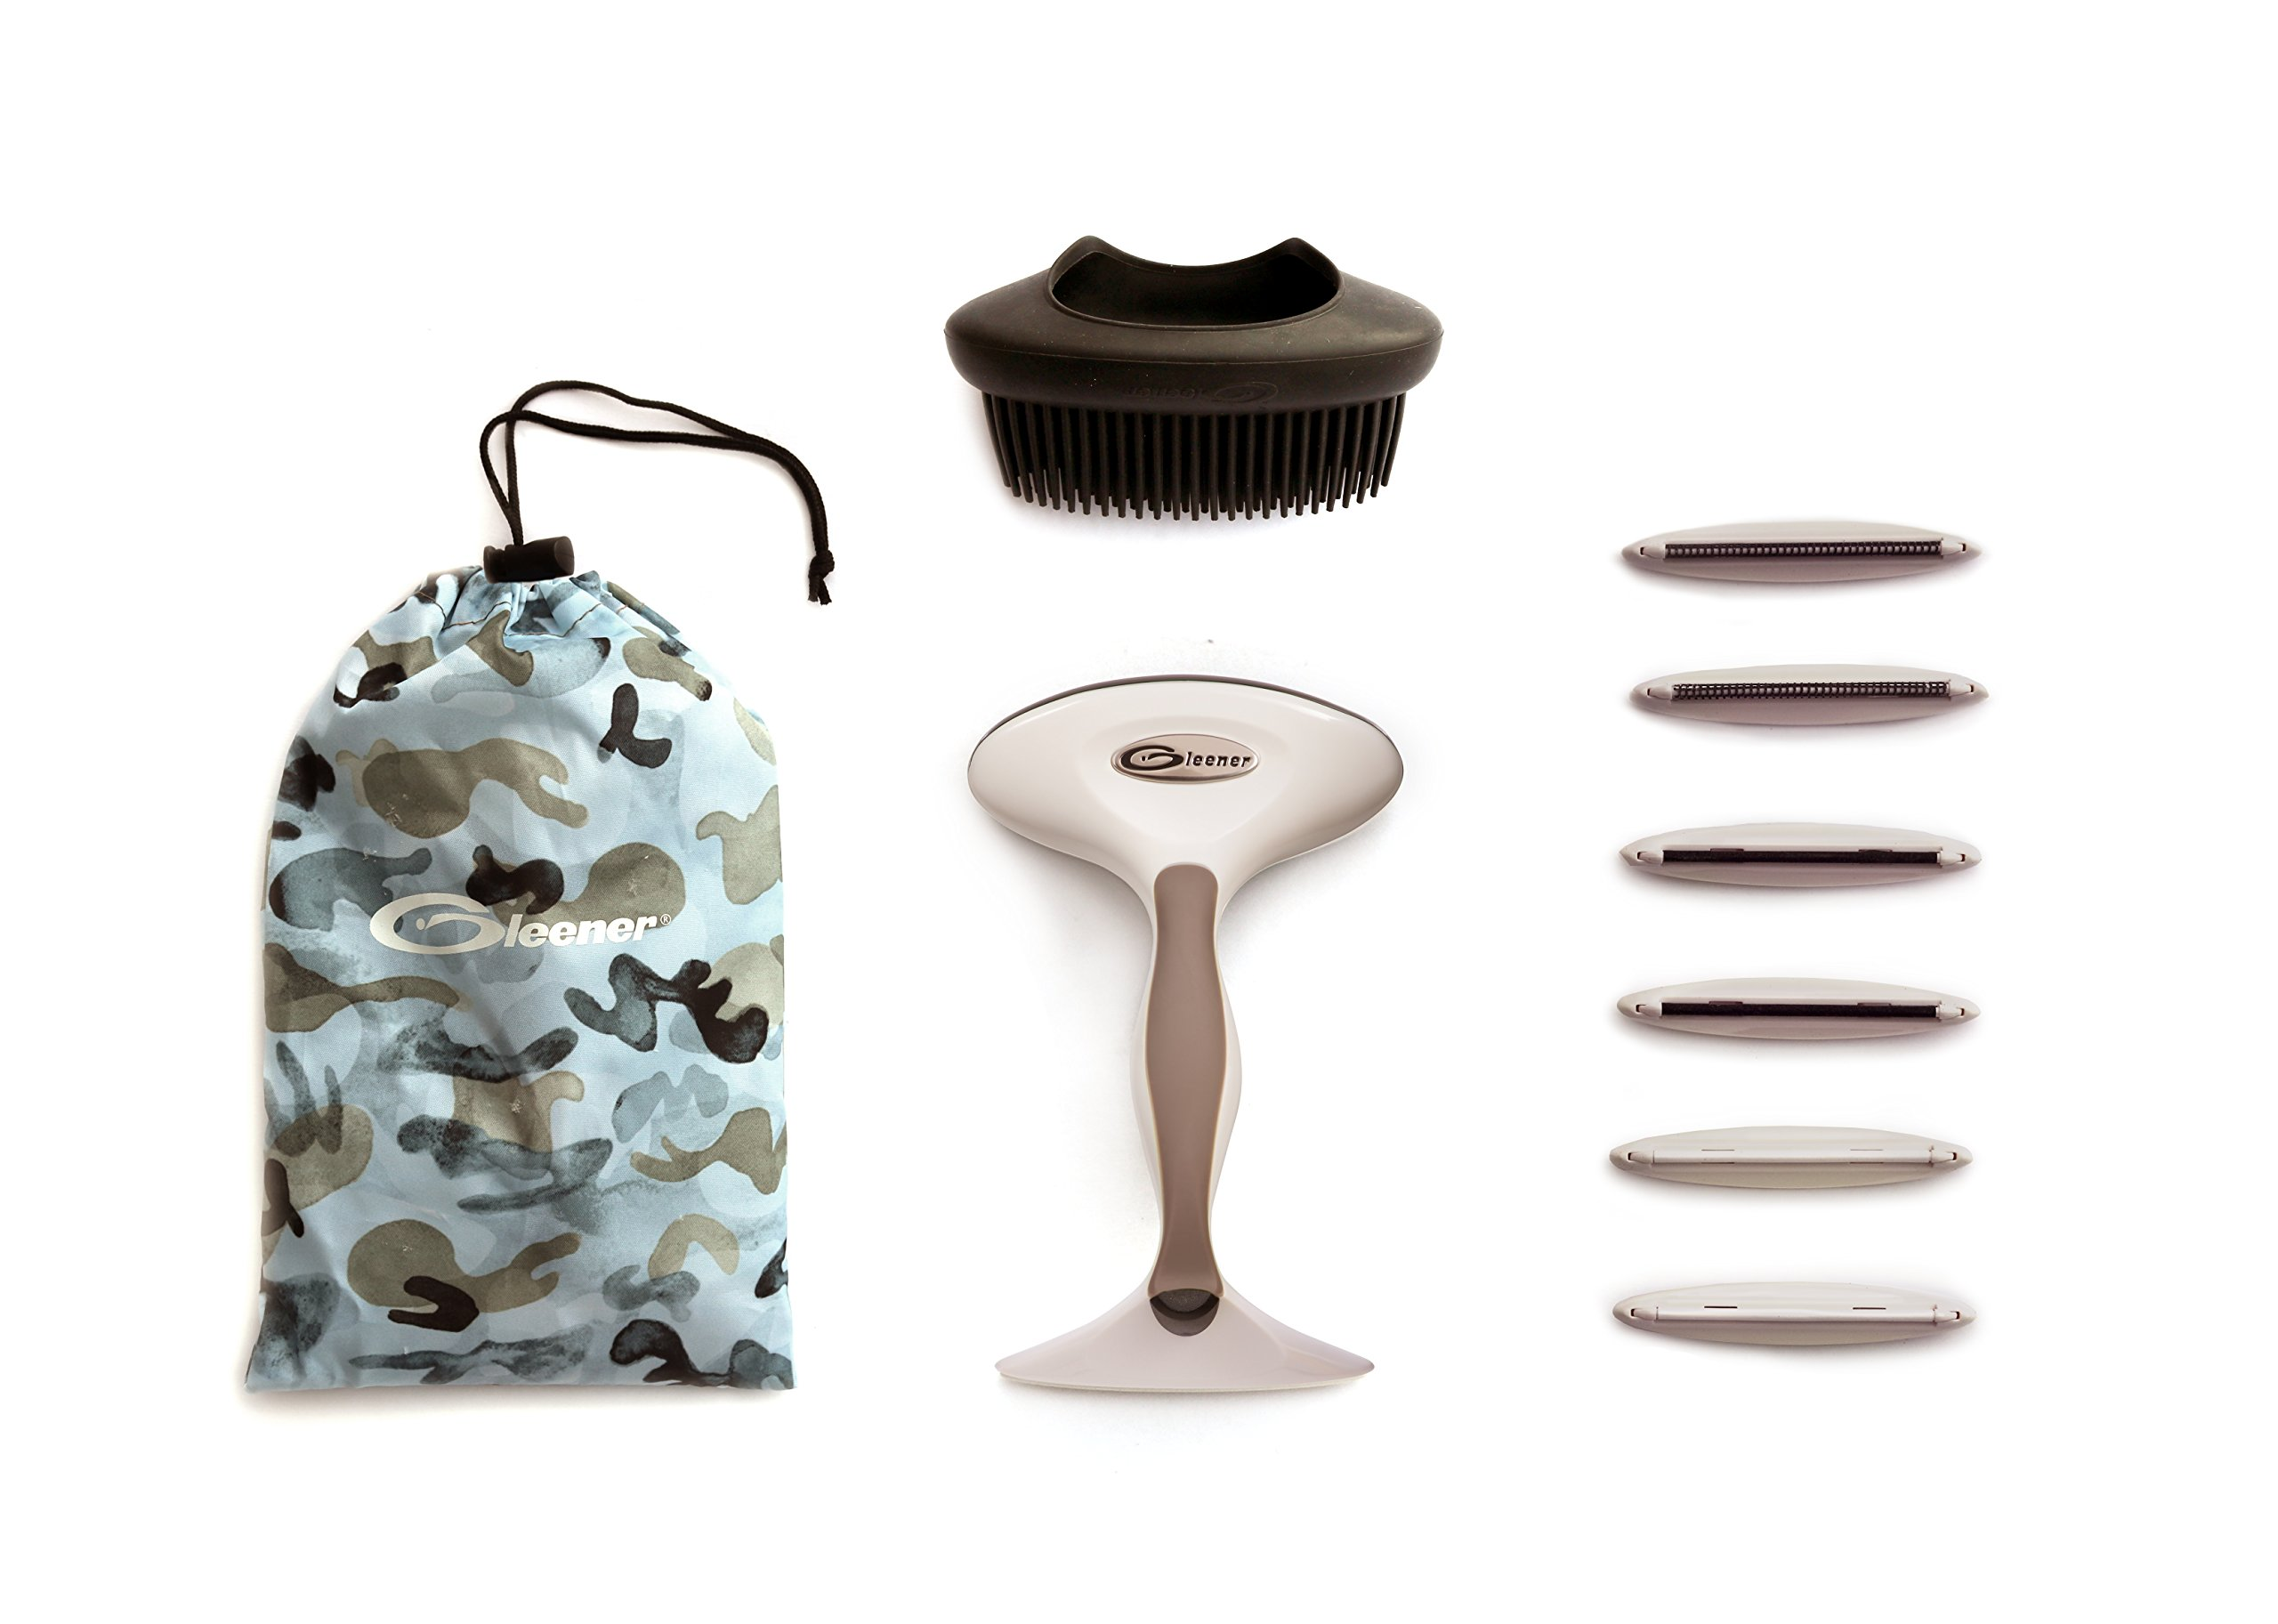 Gleener Ultimate Fuzz Remover Fabric Shaver & Lint Remover with Replacement Edges and Pet Brush accessory | Multi-use clothes shaver, sweater shaver & lint shaver (Taupe)